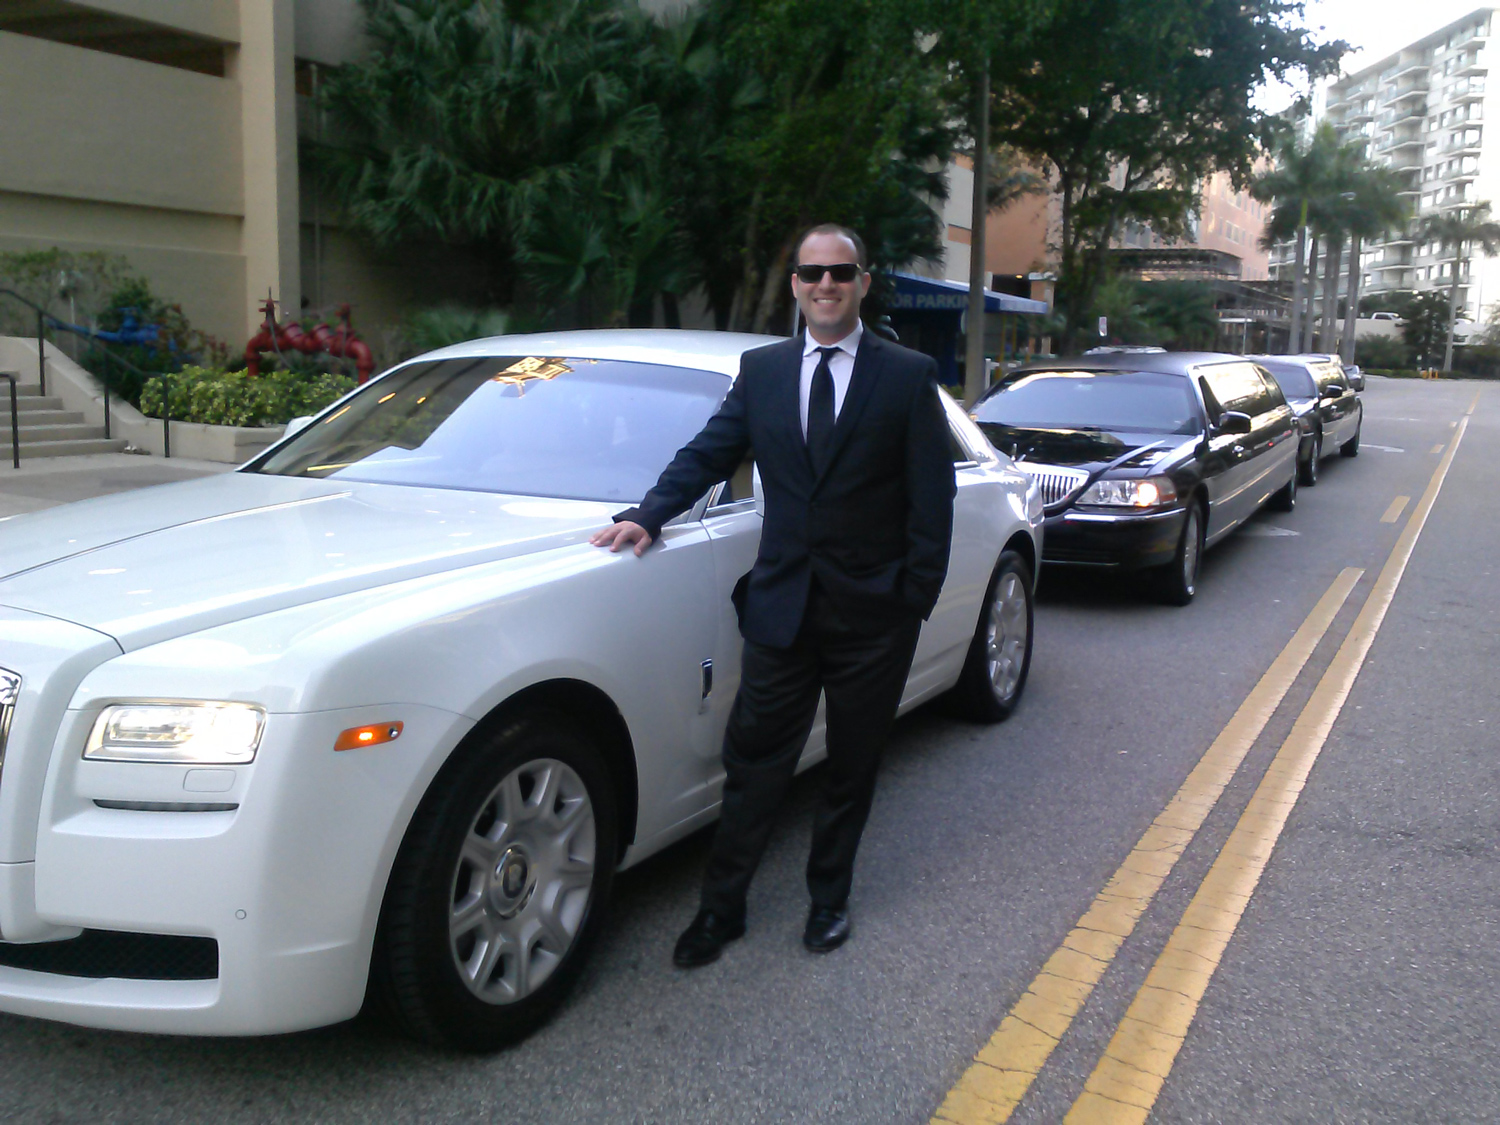 Taylored White Rolls Royce Limousine